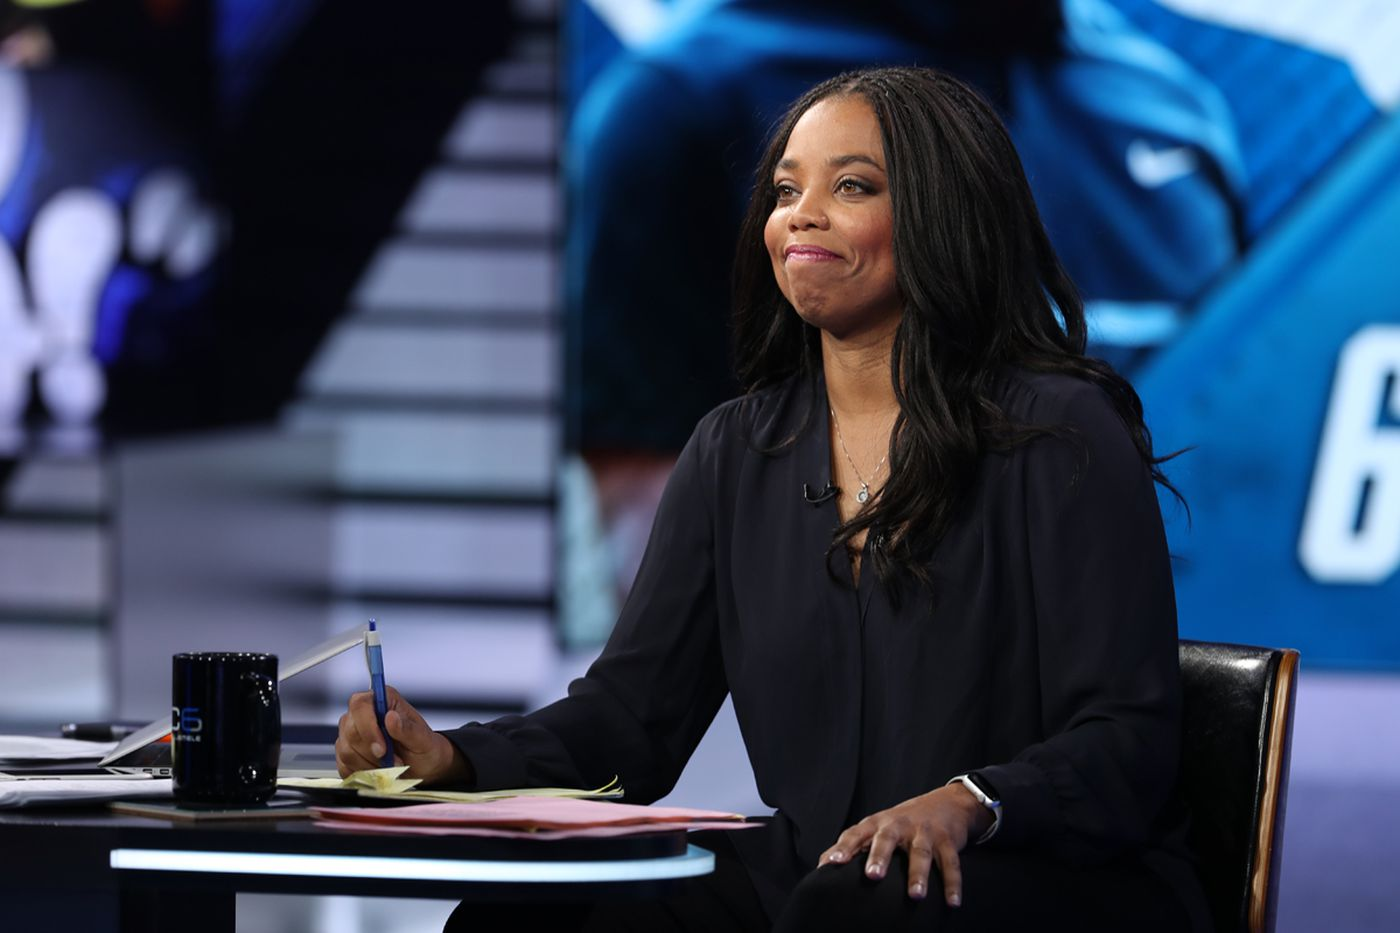 ESPN And Sportscaster Jemele Hill Part Ways, Ending Her Politics-Tinged Tenure